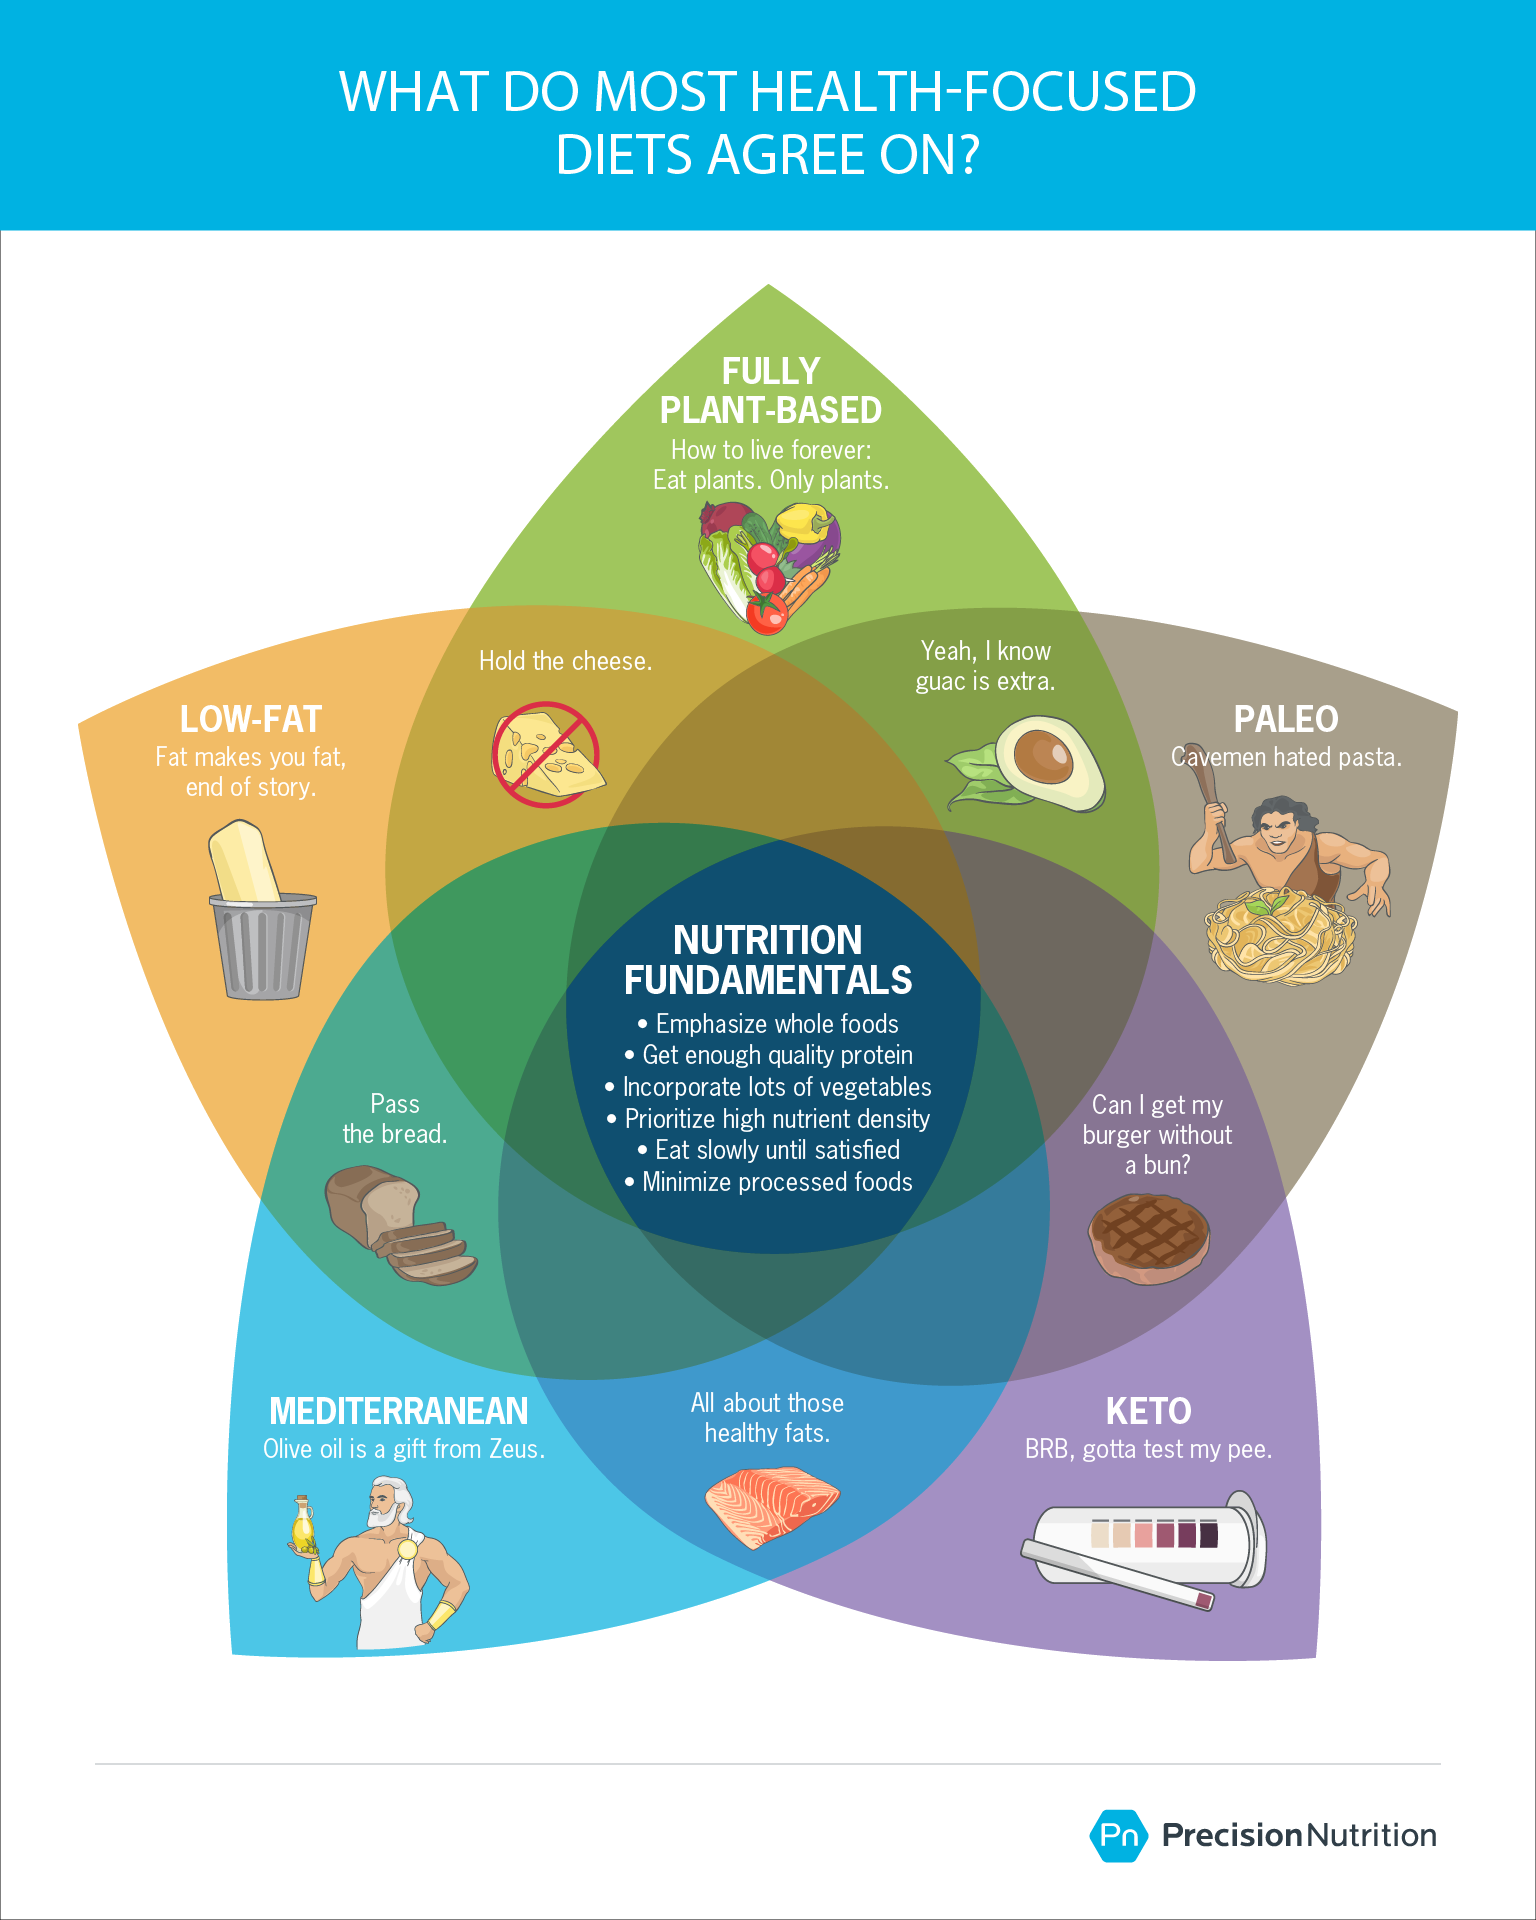 Graphic shows a Venn diagram of five diets: Fully plant-based (vegan), low-fat (high-carb), Paleo, Mediterranean, and keto (low-carb). In the middle (what they all have in common) are these nutrition fundamentals: 1) emphasize whole foods, 2) get enough quality protein, 3) incorporate lots of vegetables, 4) prioritize high nutrient density, 5) eat slowly until satisfied, 6) minimize processed foods.